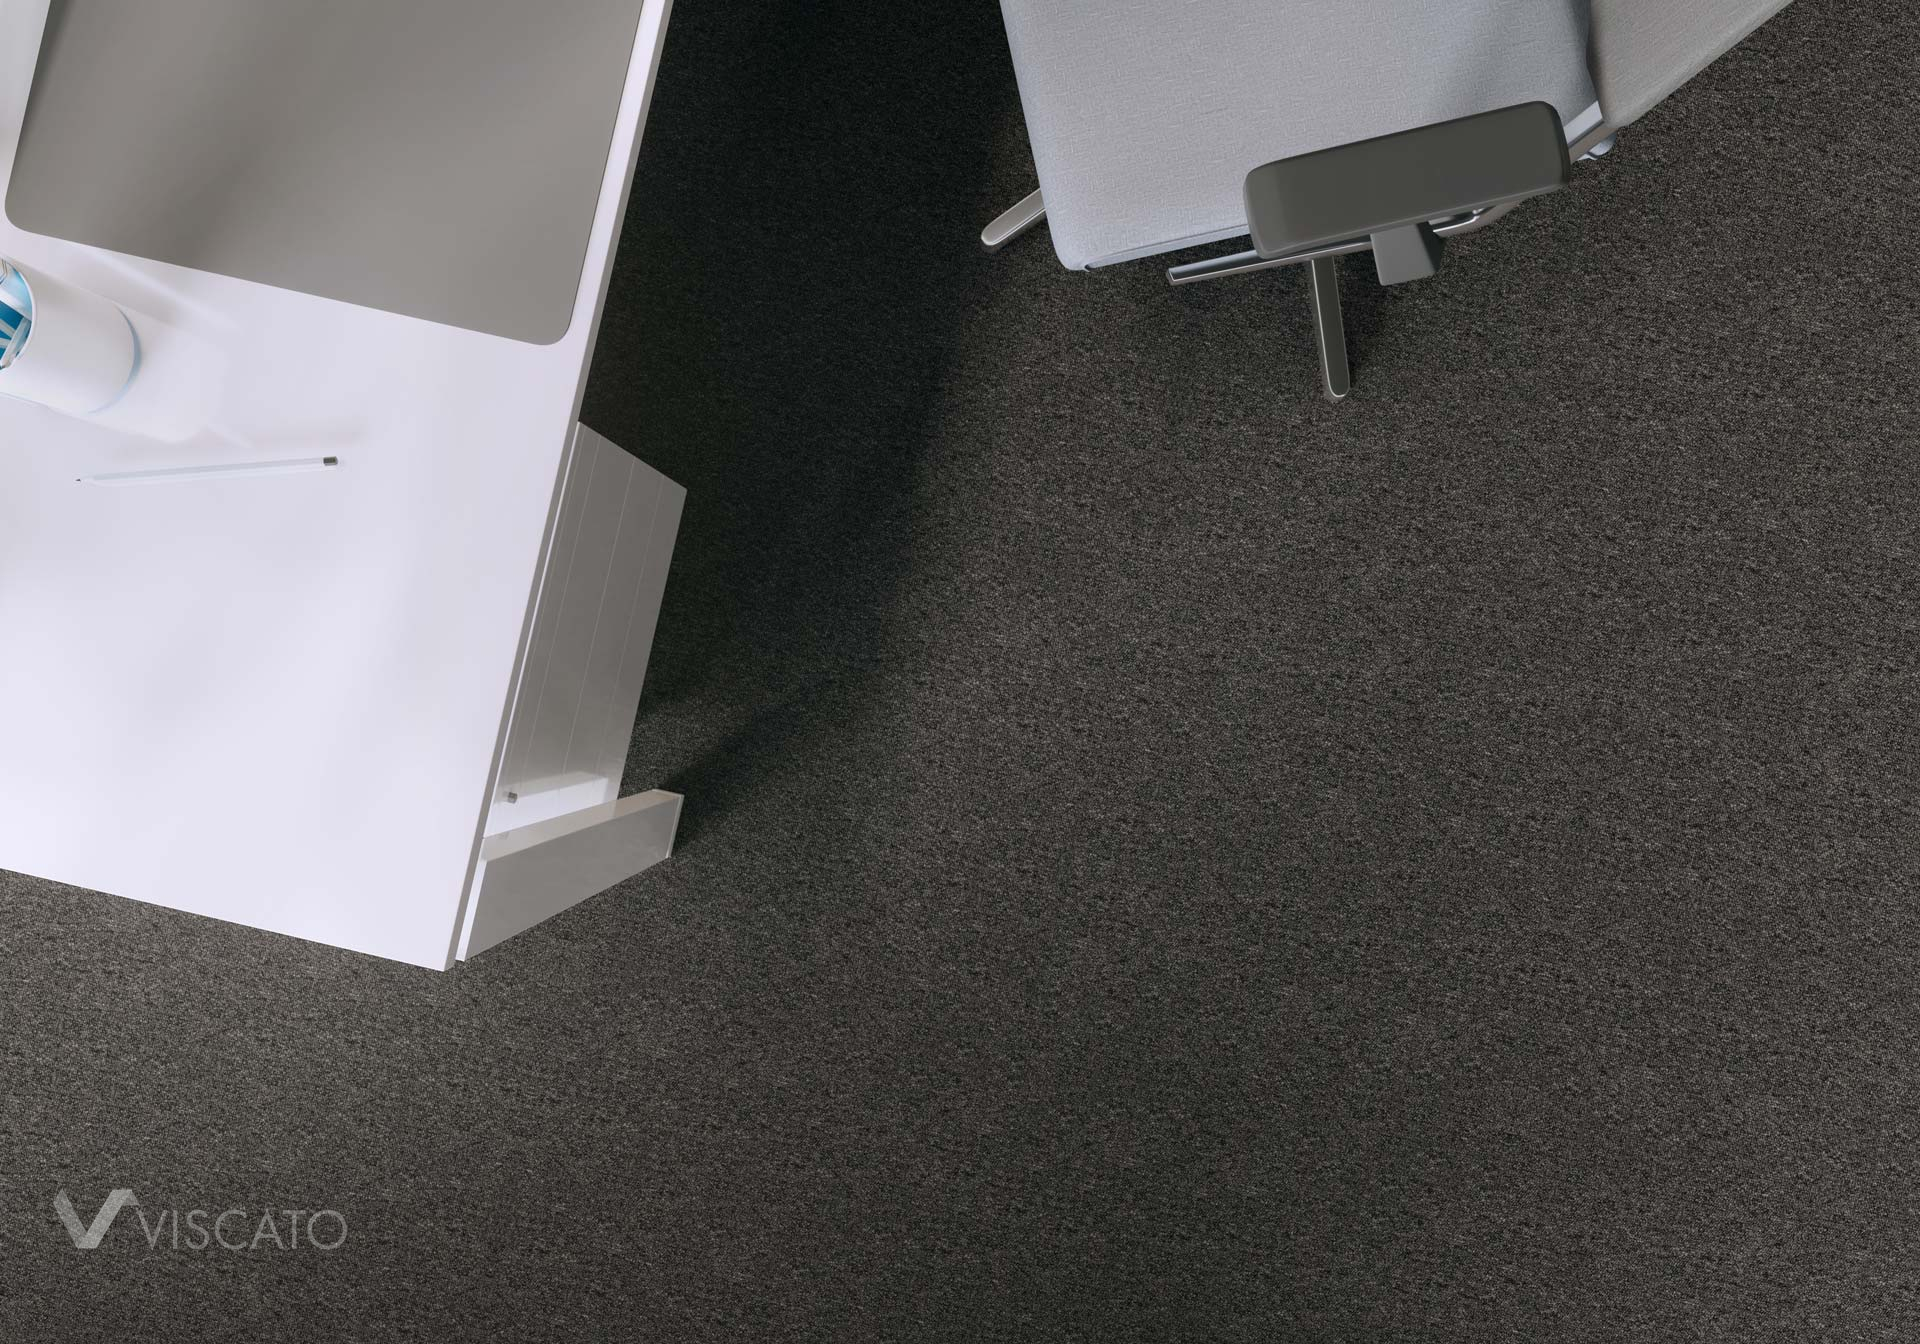 Carpet in detail, 3D visualization